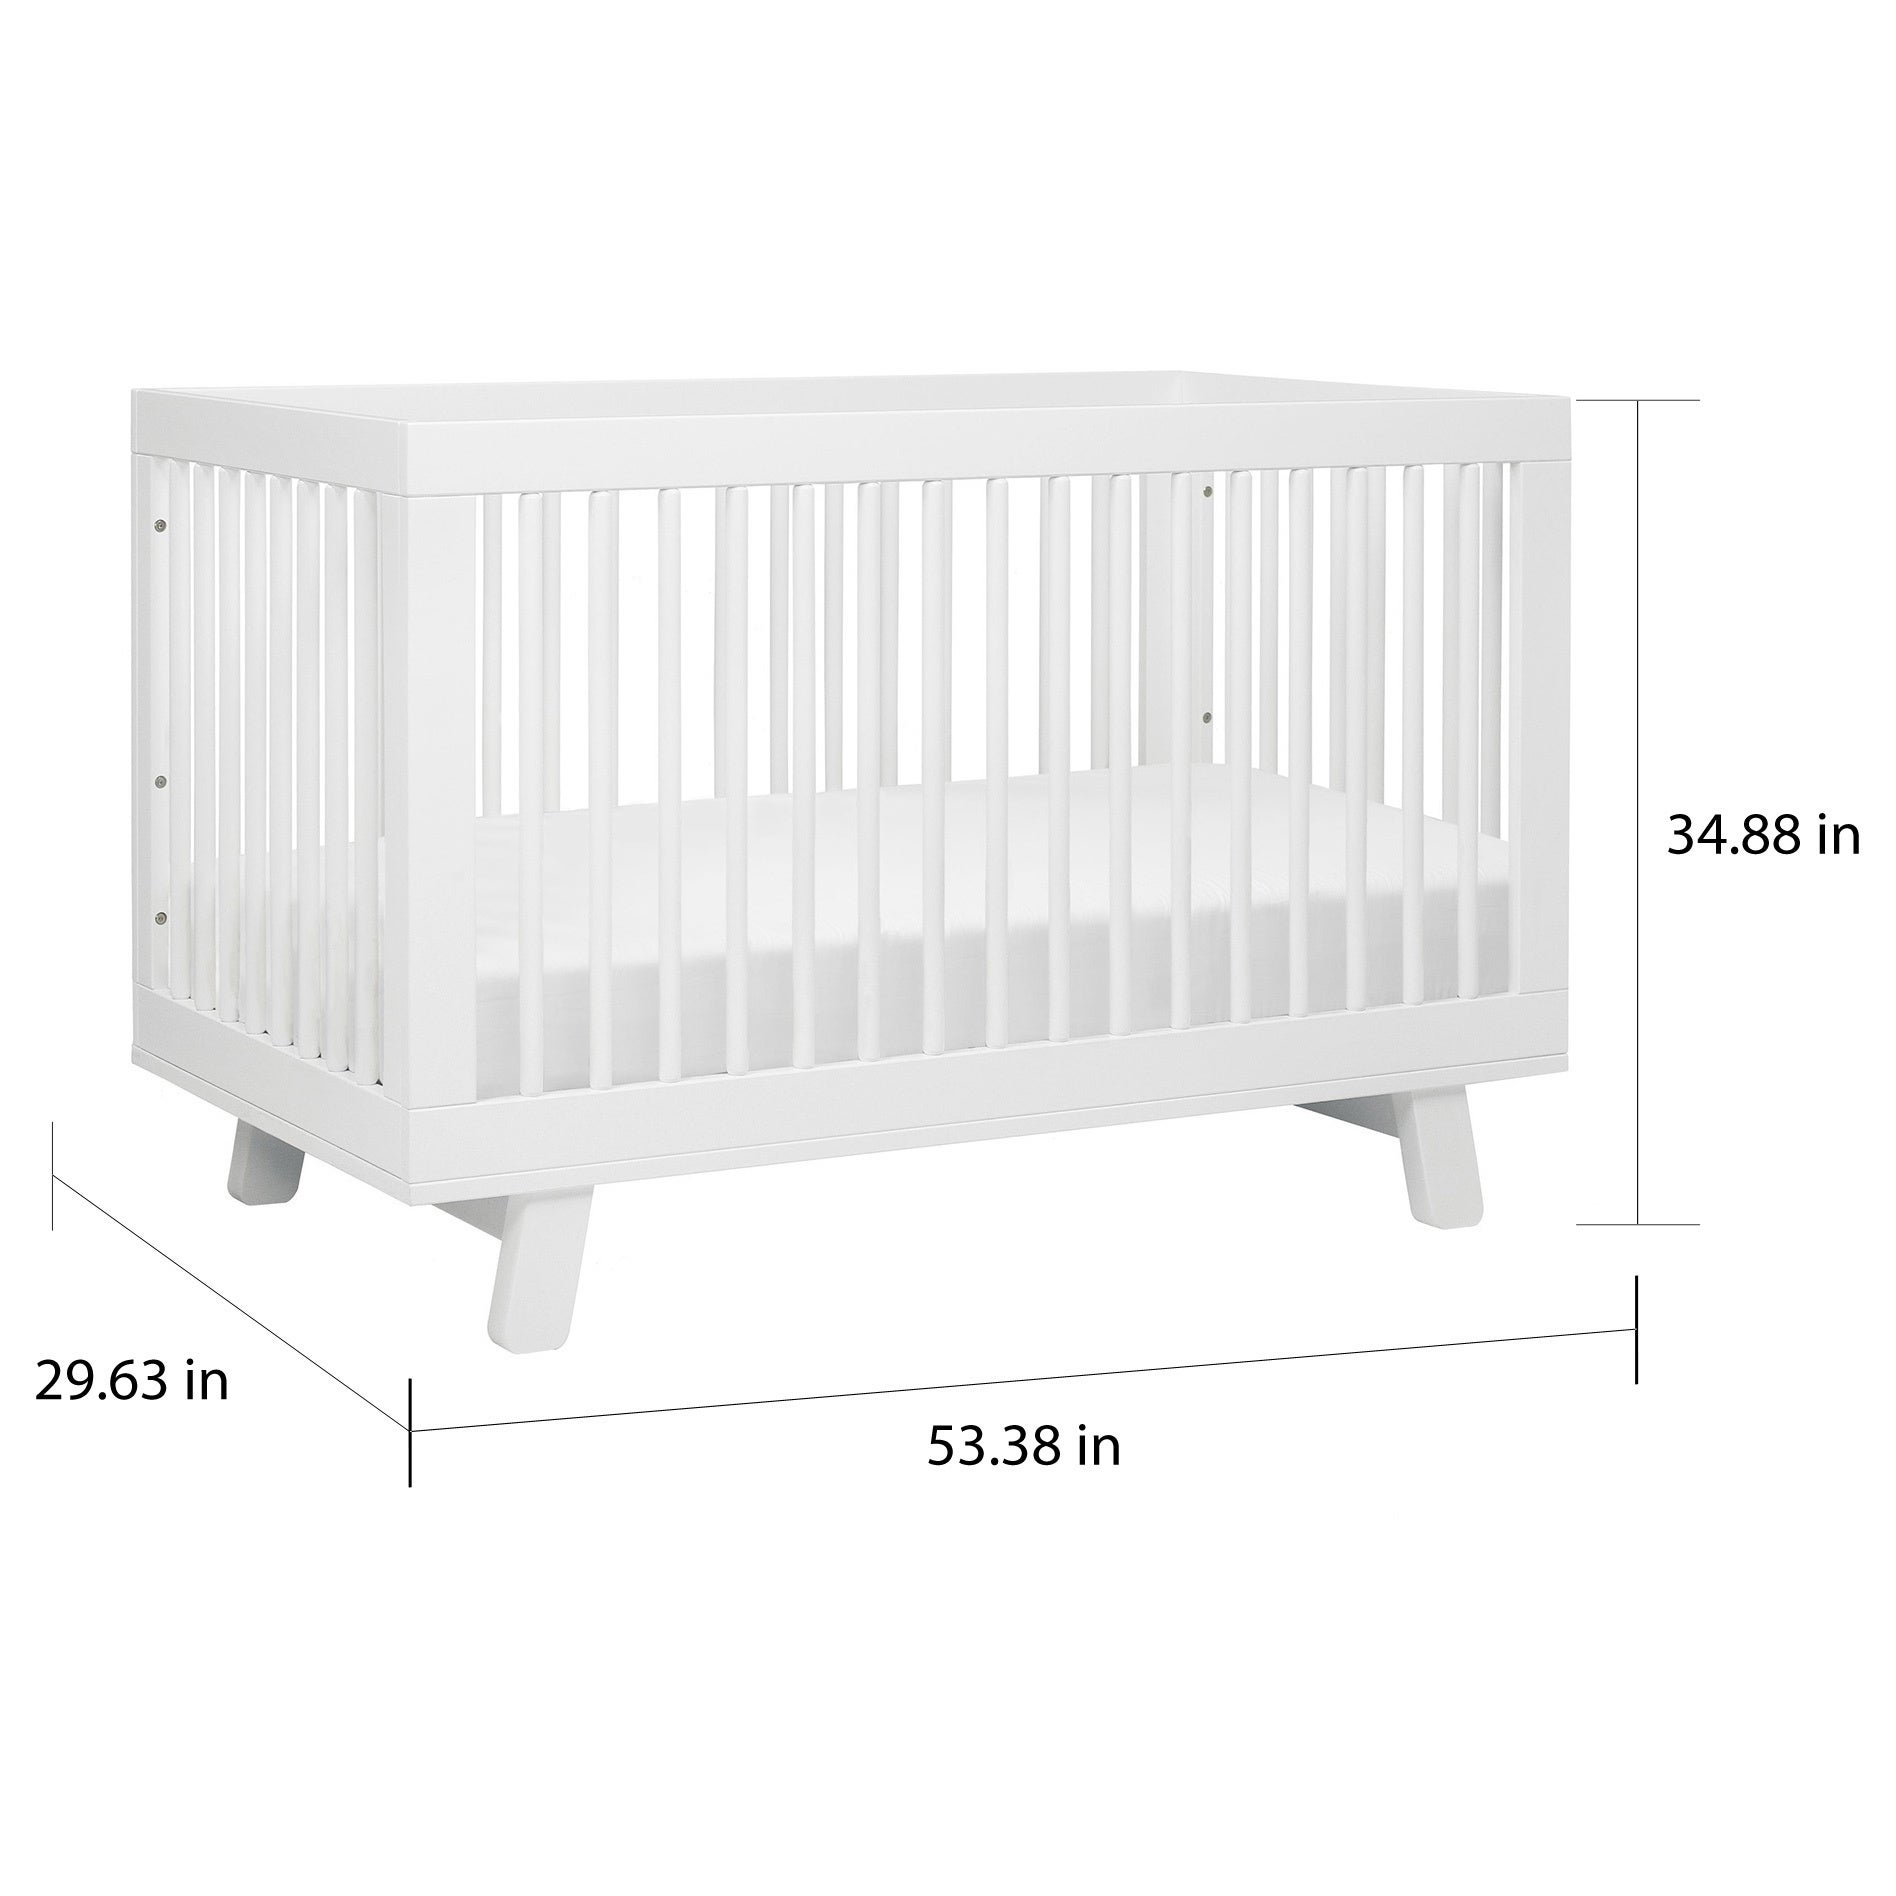 dawn and toddler cribs supreme new free crib shipping mattress overstock serta baby today product multi